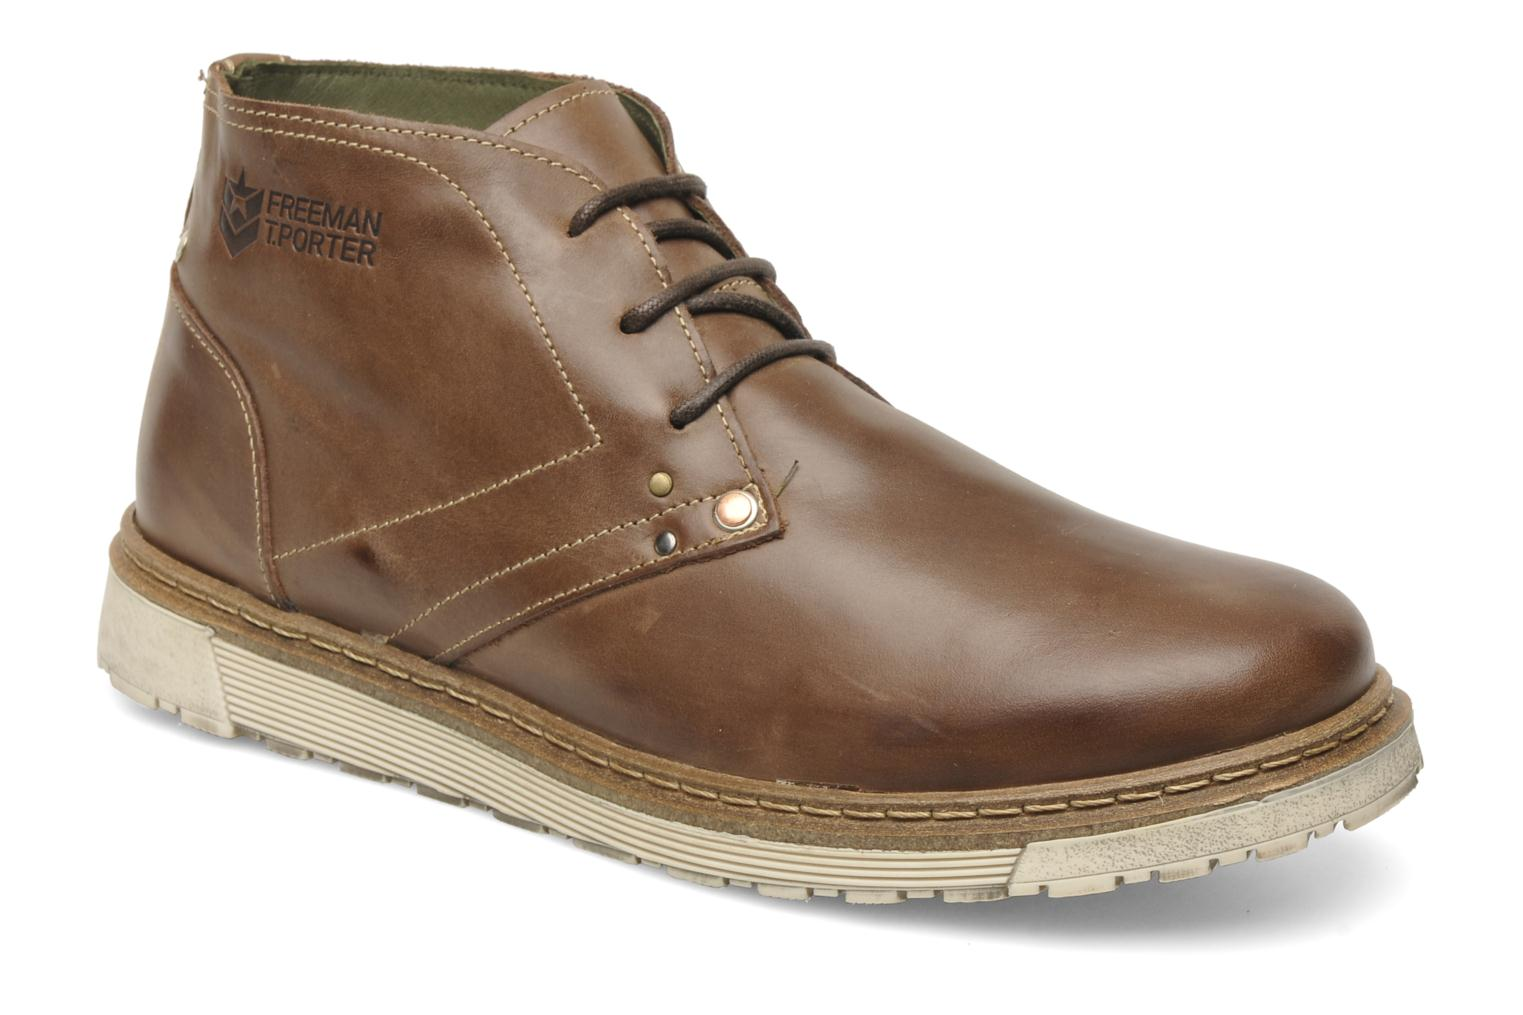 freeman t porter bridwell lace up shoes in brown at 143043. Black Bedroom Furniture Sets. Home Design Ideas